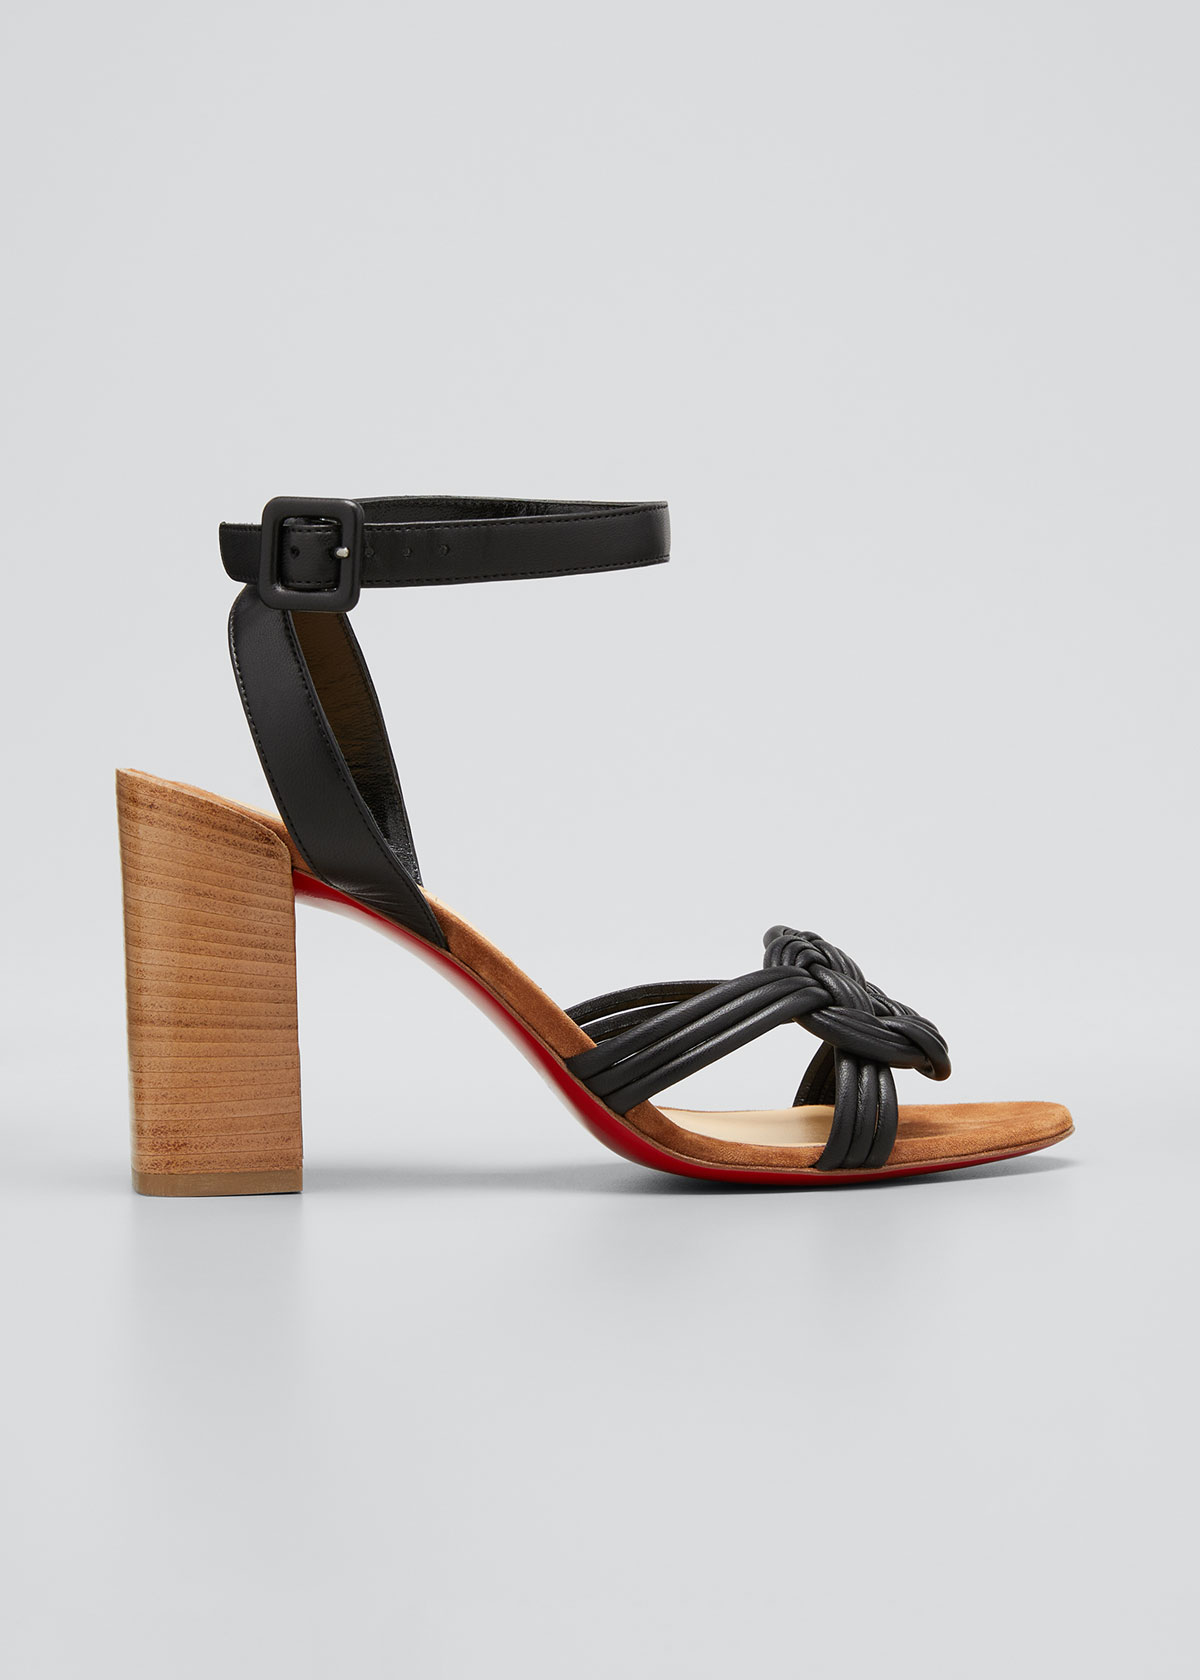 Christian Louboutin ELLA 85MM KNOT RED SOLE SANDALS